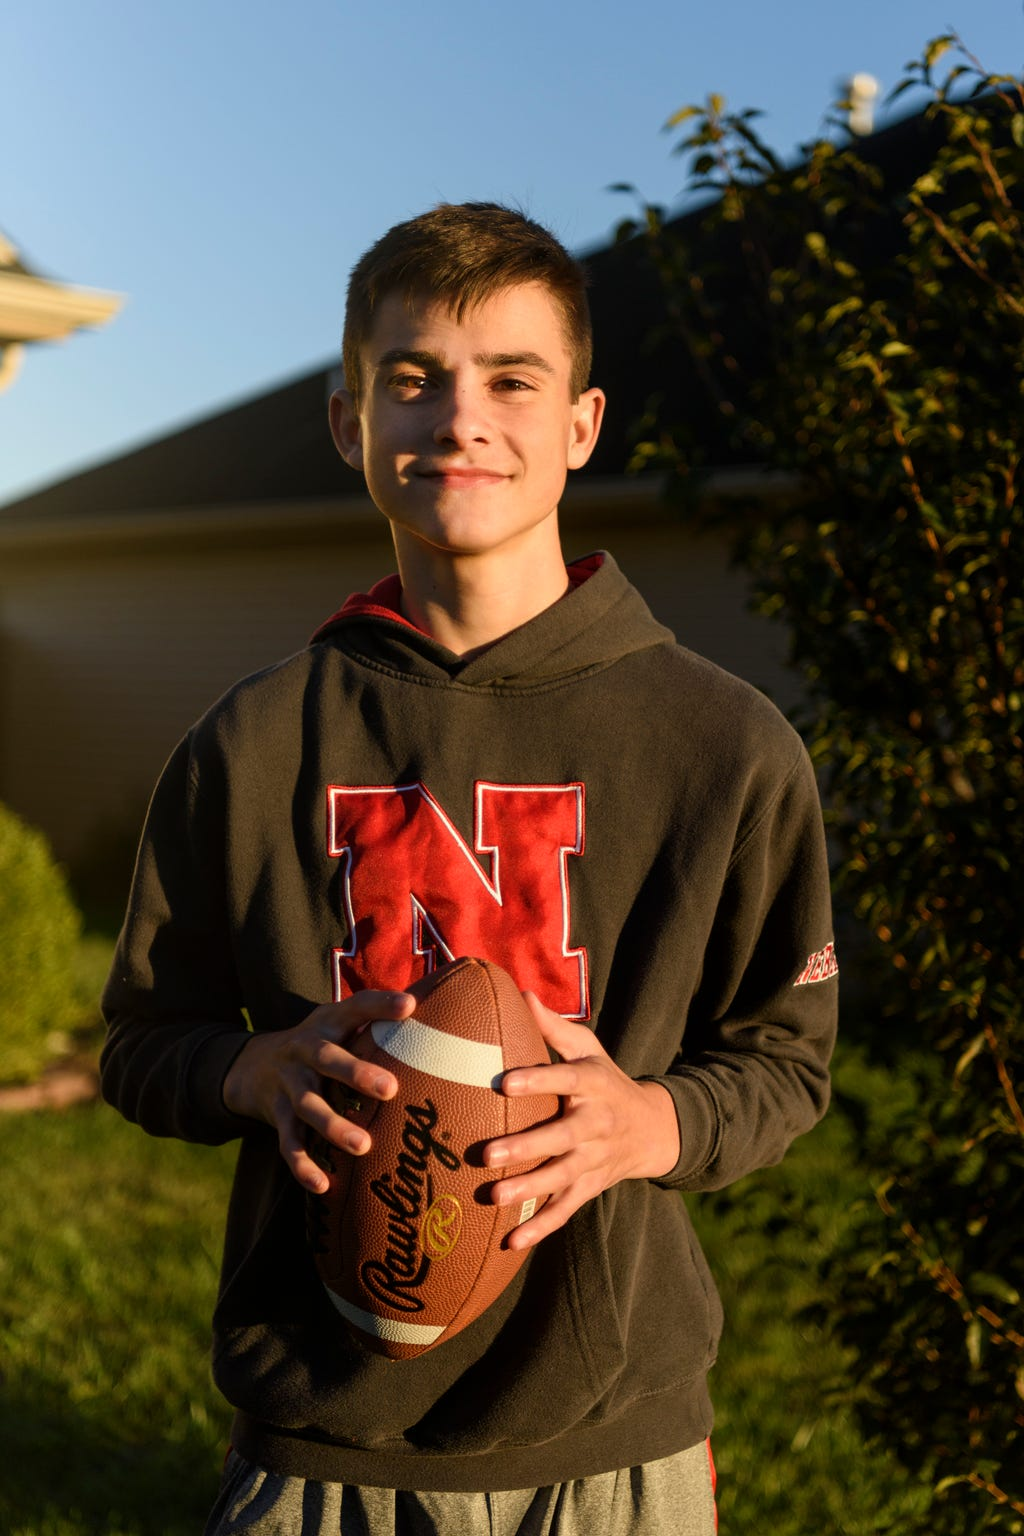 Sam Archuleta, a fifteen-year-old North High School freshman, has a rare degenerative neuromuscular disorder called Friedreich's ataxia (FA). He was diagnosed in March and stays active to maintain as much independence as possible.